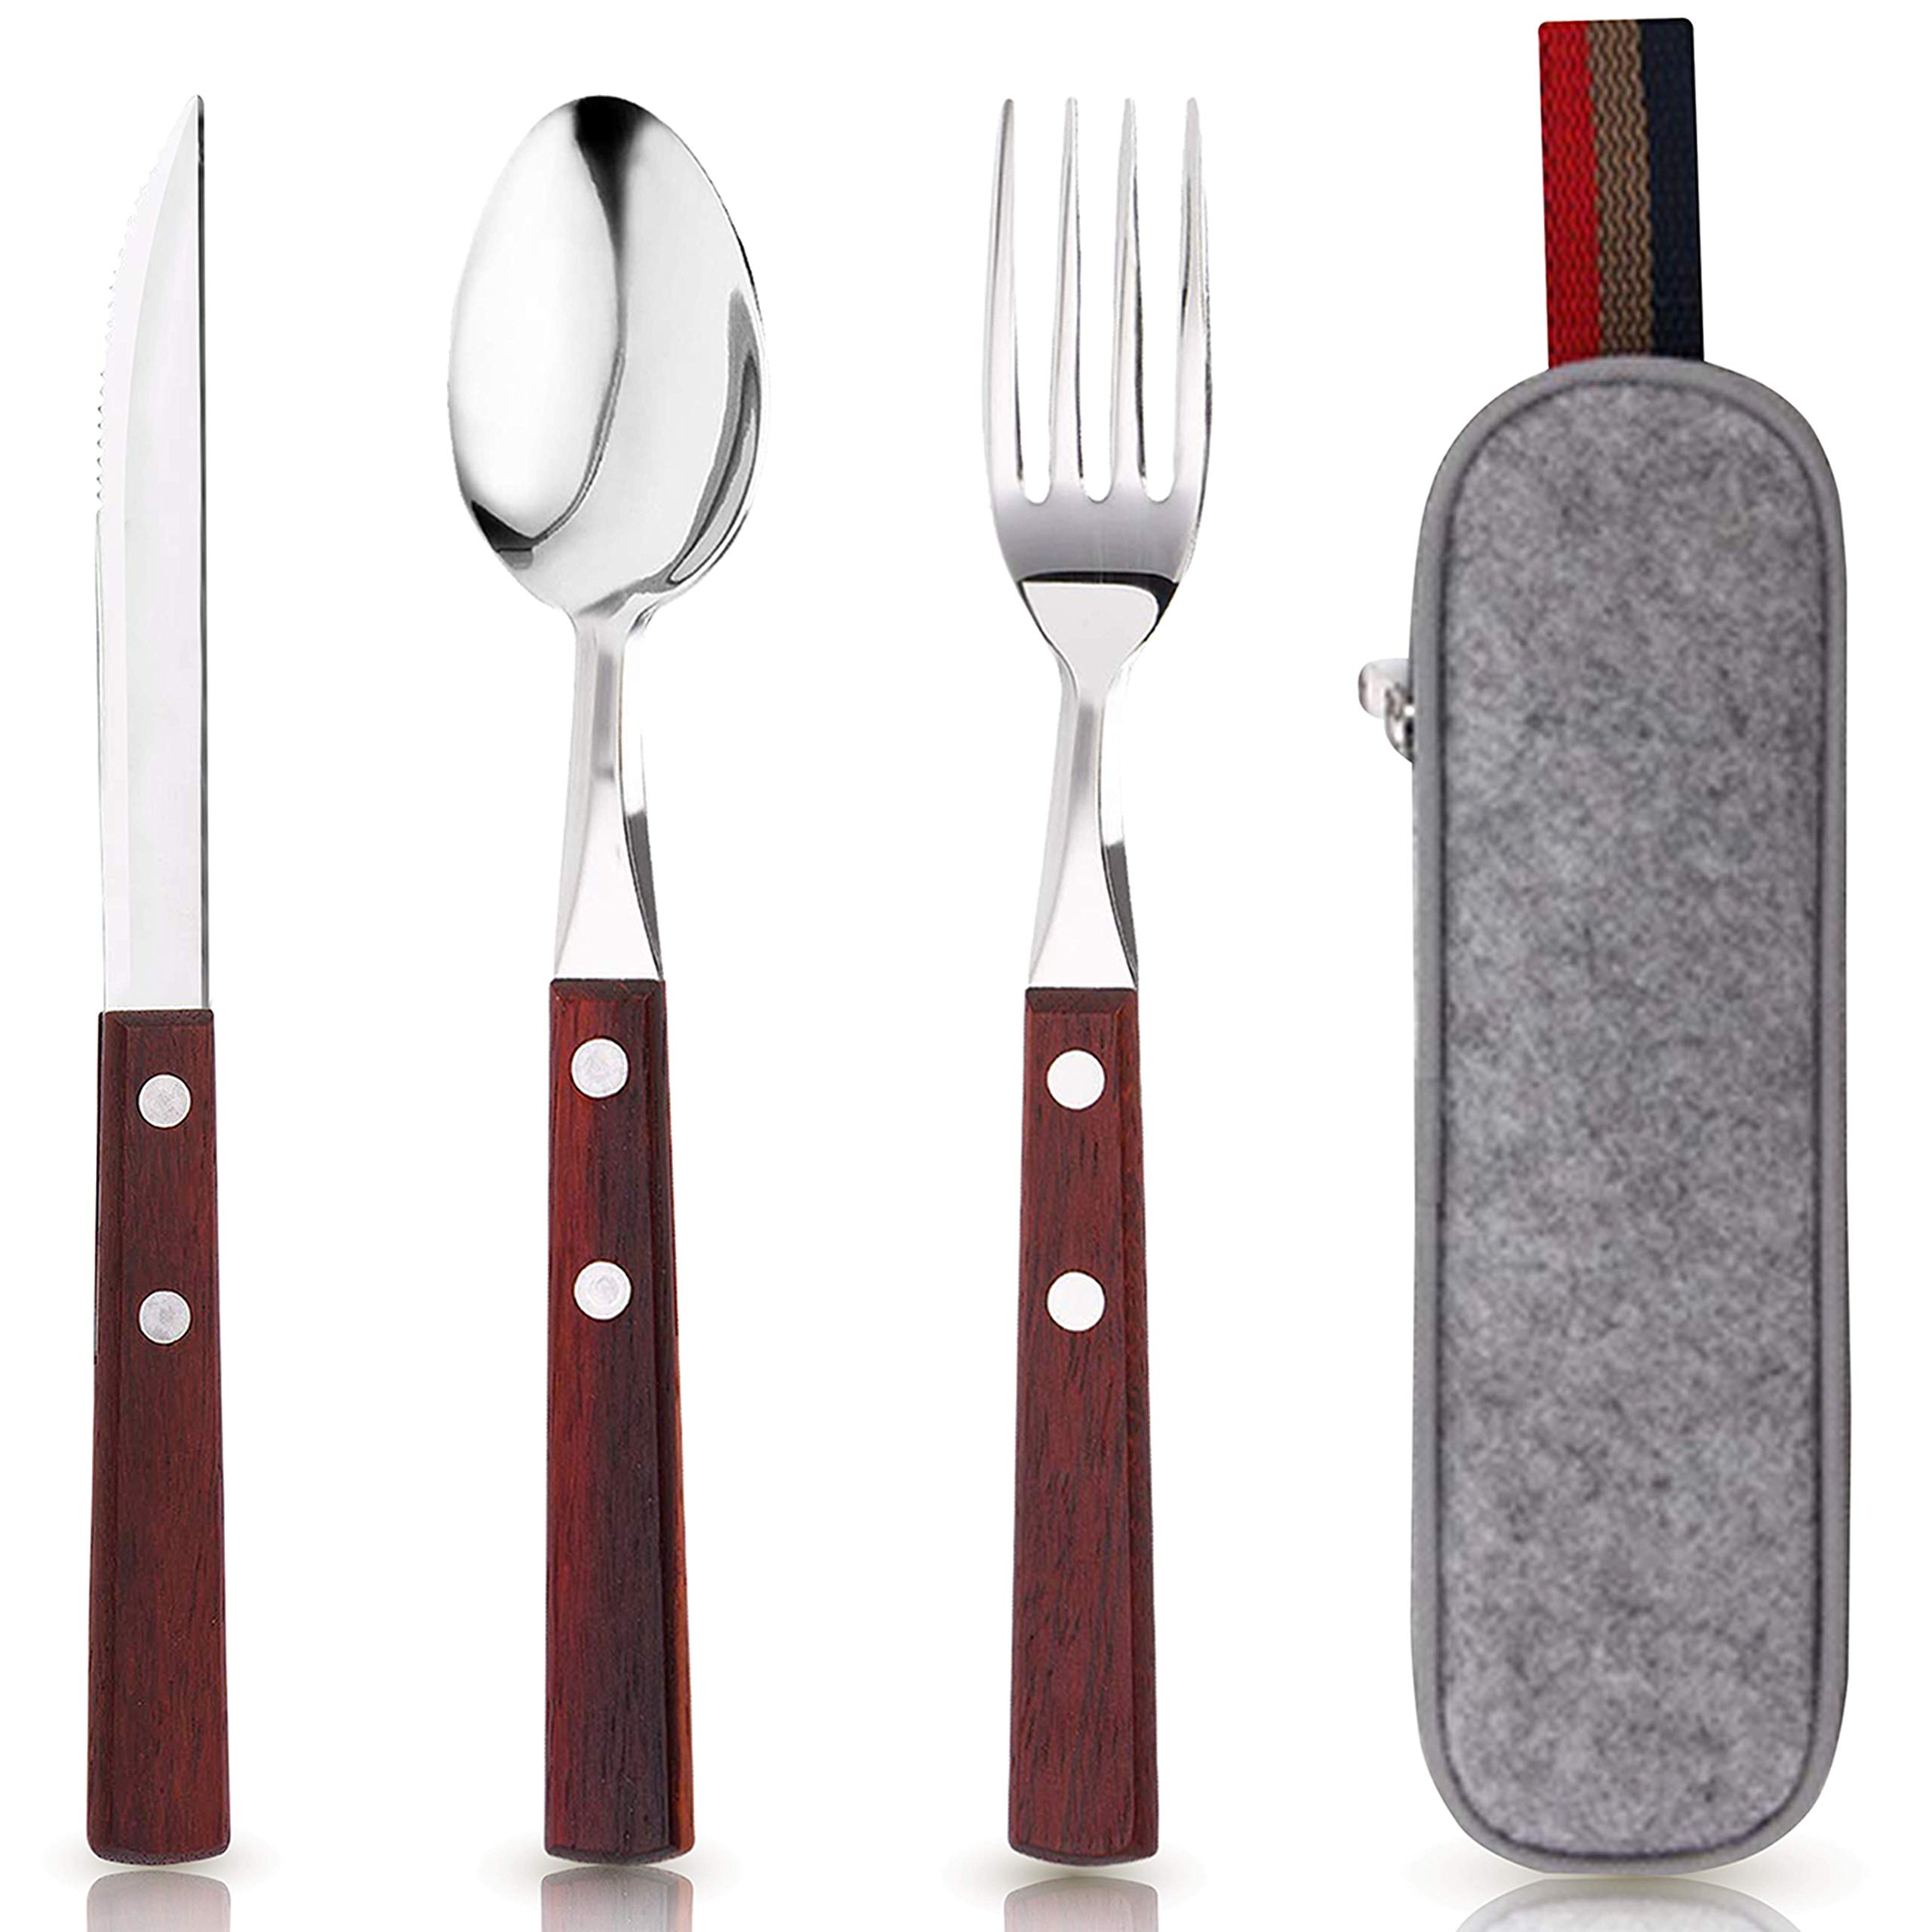 PREMIUM QUALITY Stainless Steel travel utensils with case, Healthy & Eco-Friendly 3pc Full Size Fork, Spoon, Portable Utensils Set with Case, reusable utensils with case